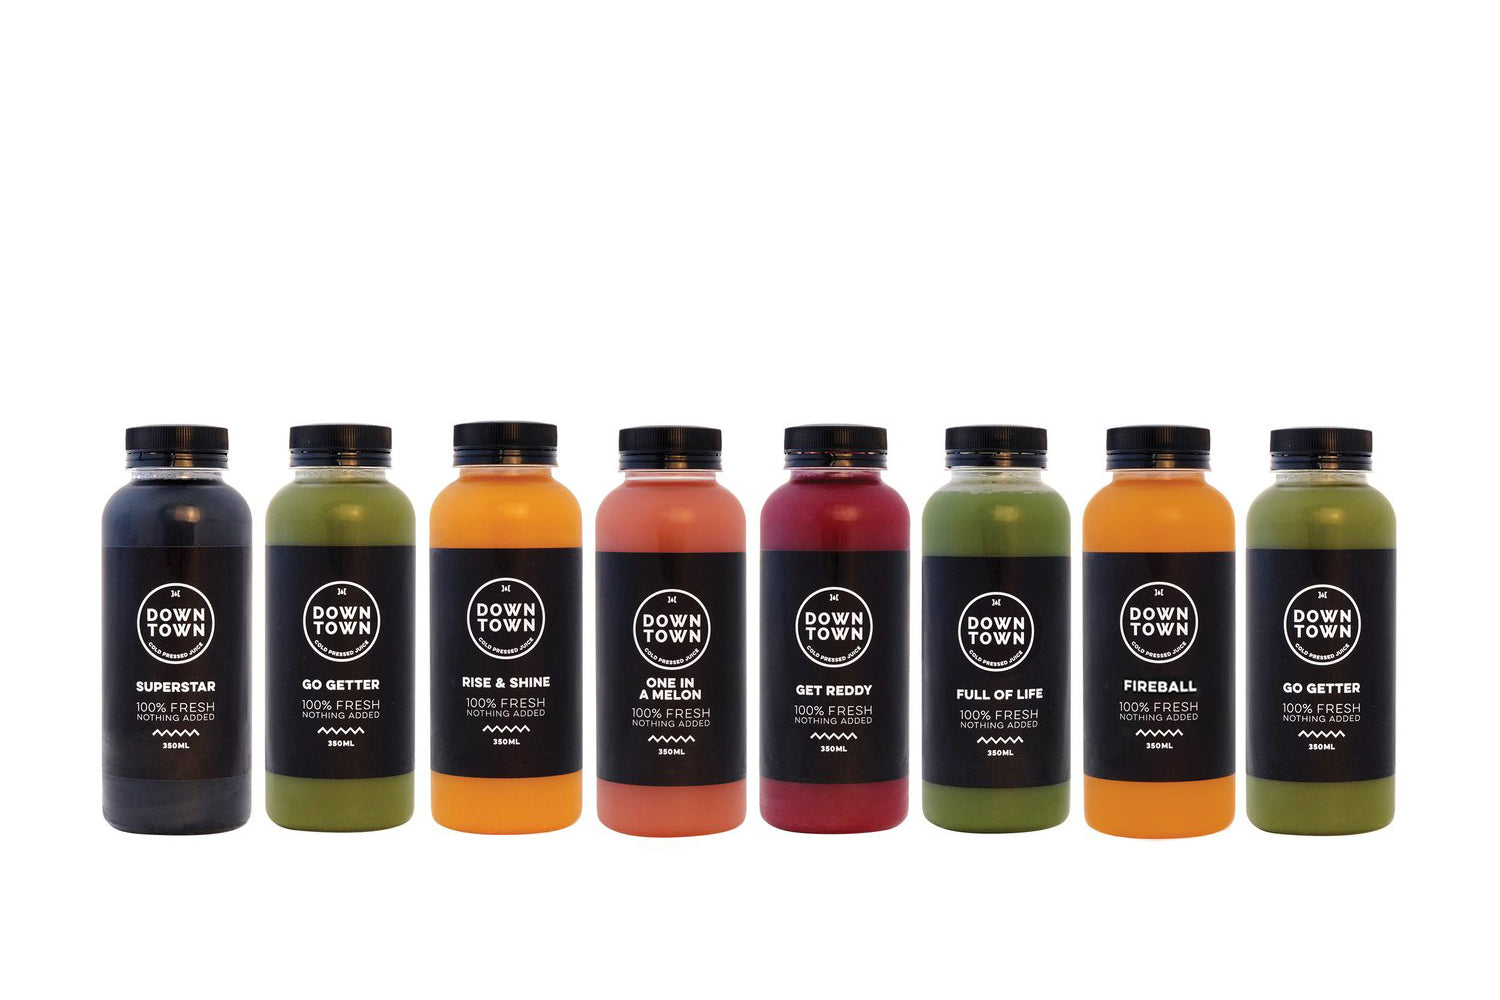 Winter Special - 3 Day Cleanse